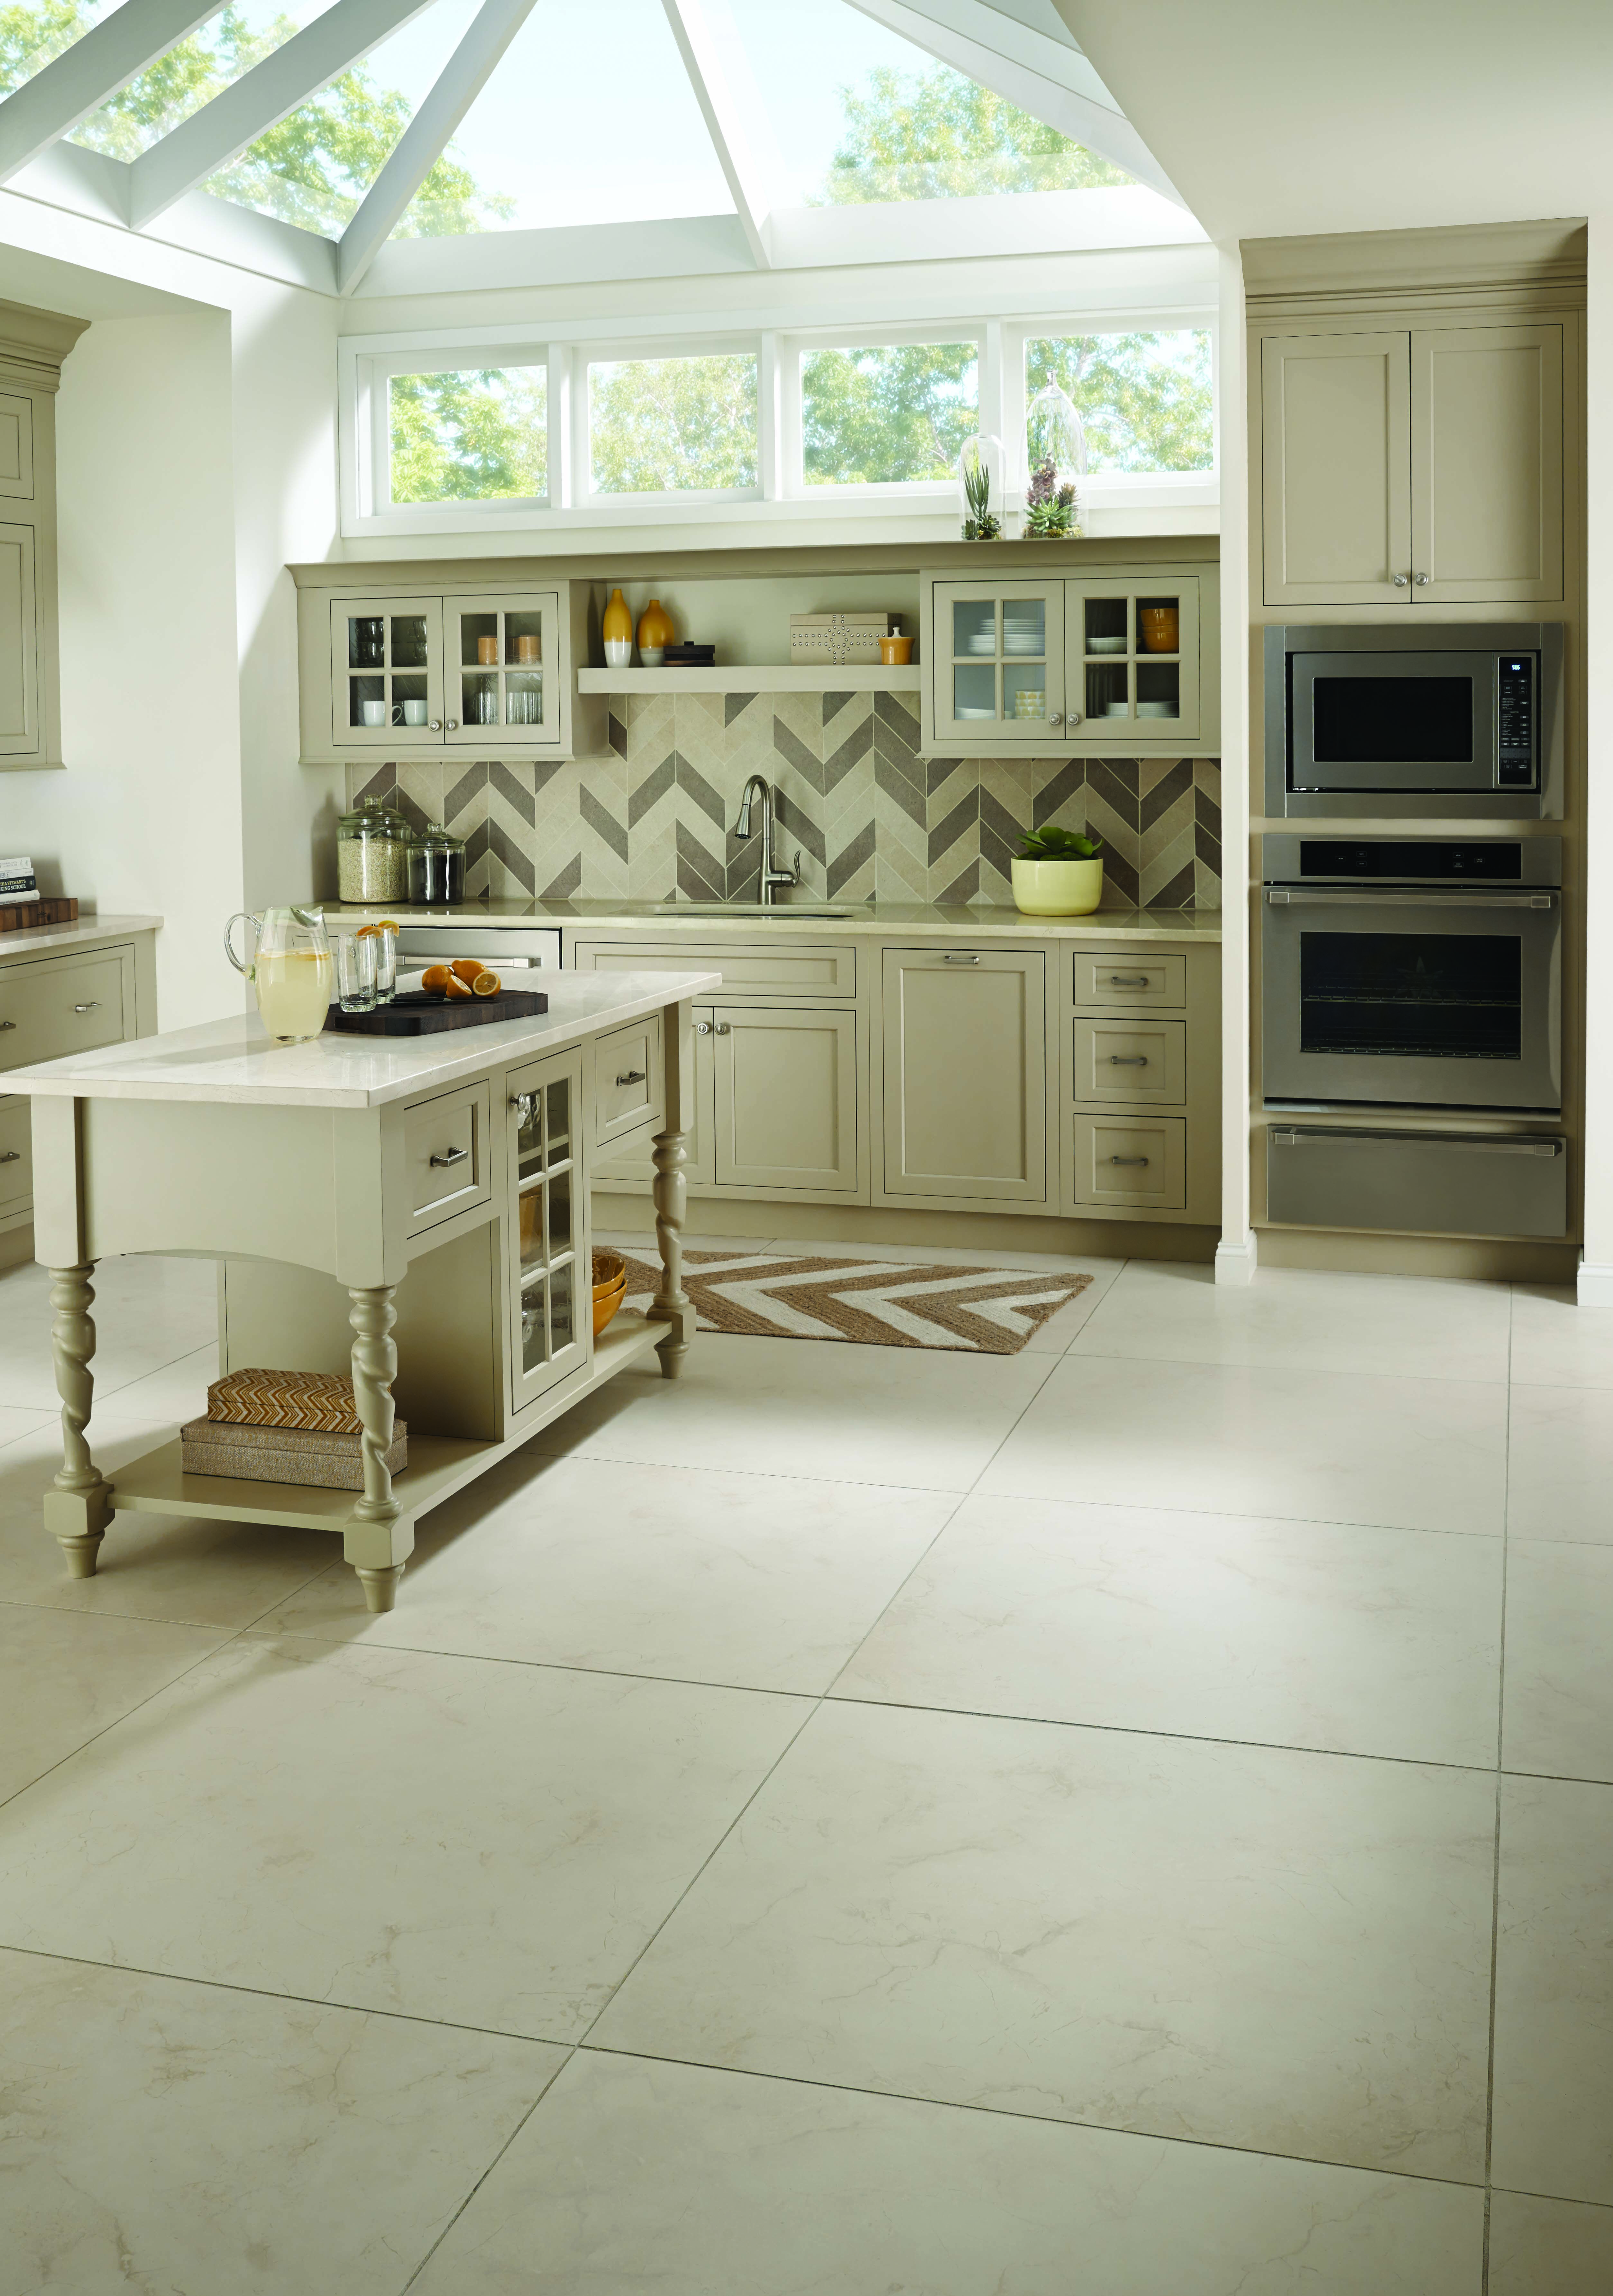 Laminam By Crossvilleu0027s Technologically Advanced, Aesthetically Innovative  Tile Panels, Available In Thicknesses Of 3